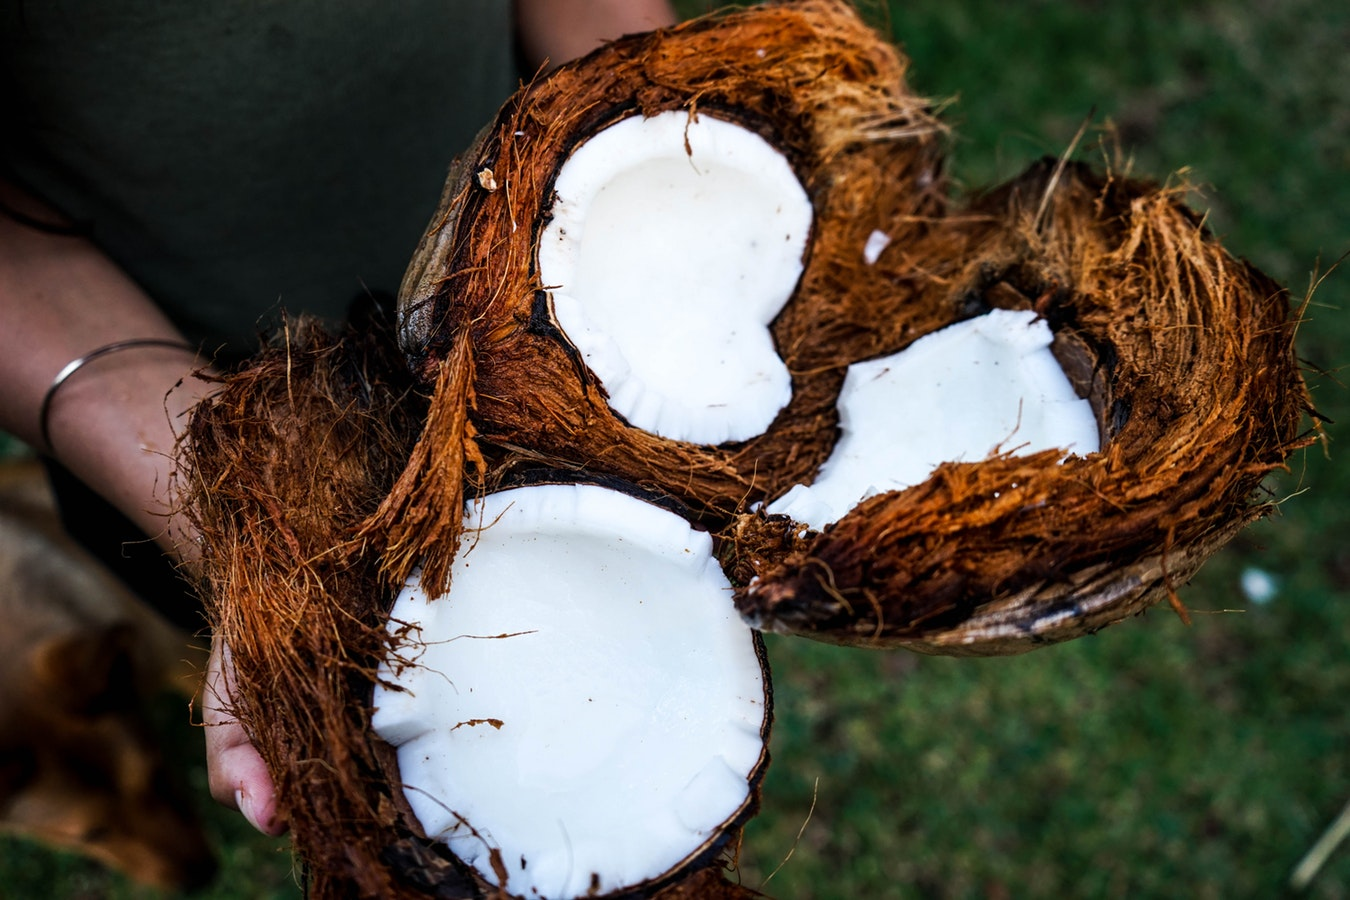 An individual holding coconuts. Coconut oil is said to be beneficial for Alzheimer's patients